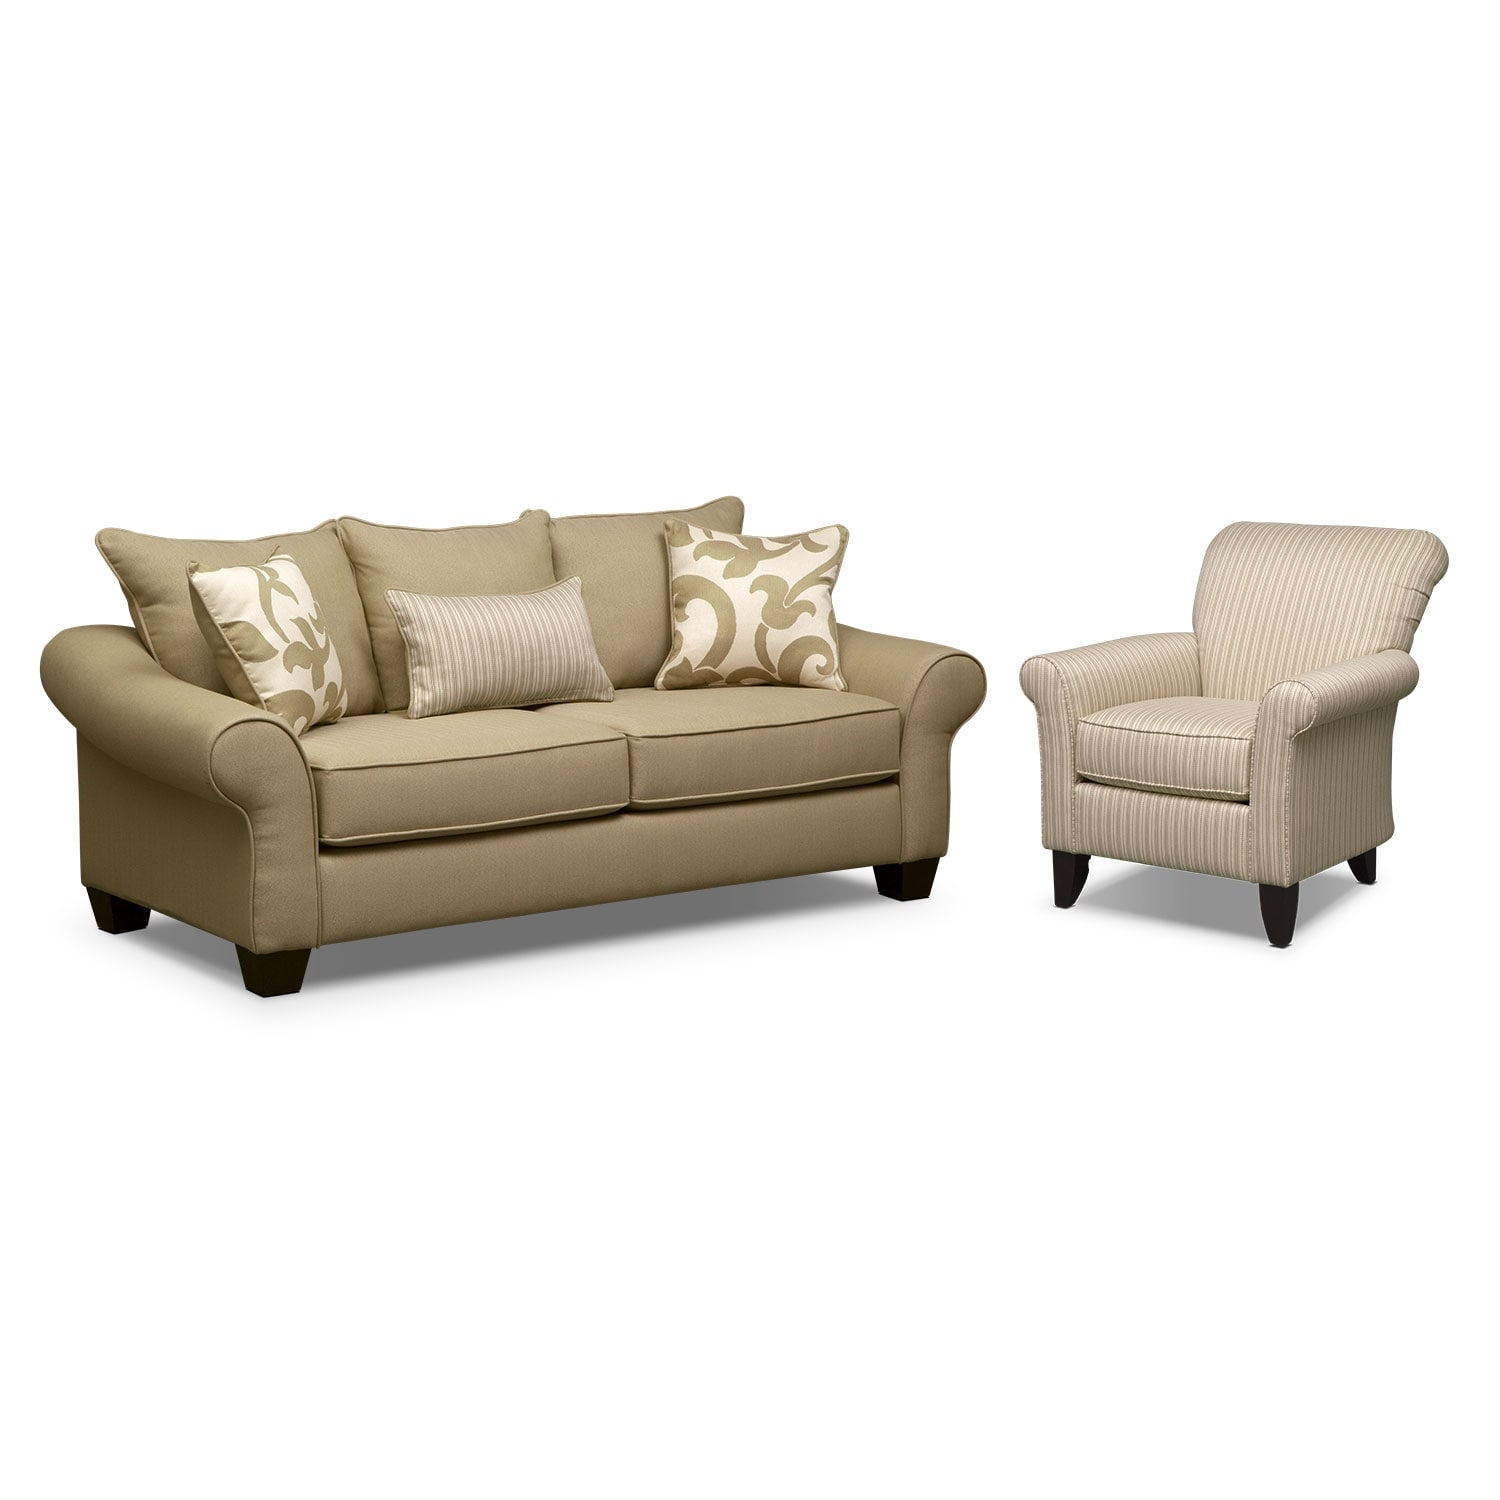 Living Room Furniture - Colette Full Innerspring Sleeper Sofa and Accent Chair Set - Khaki